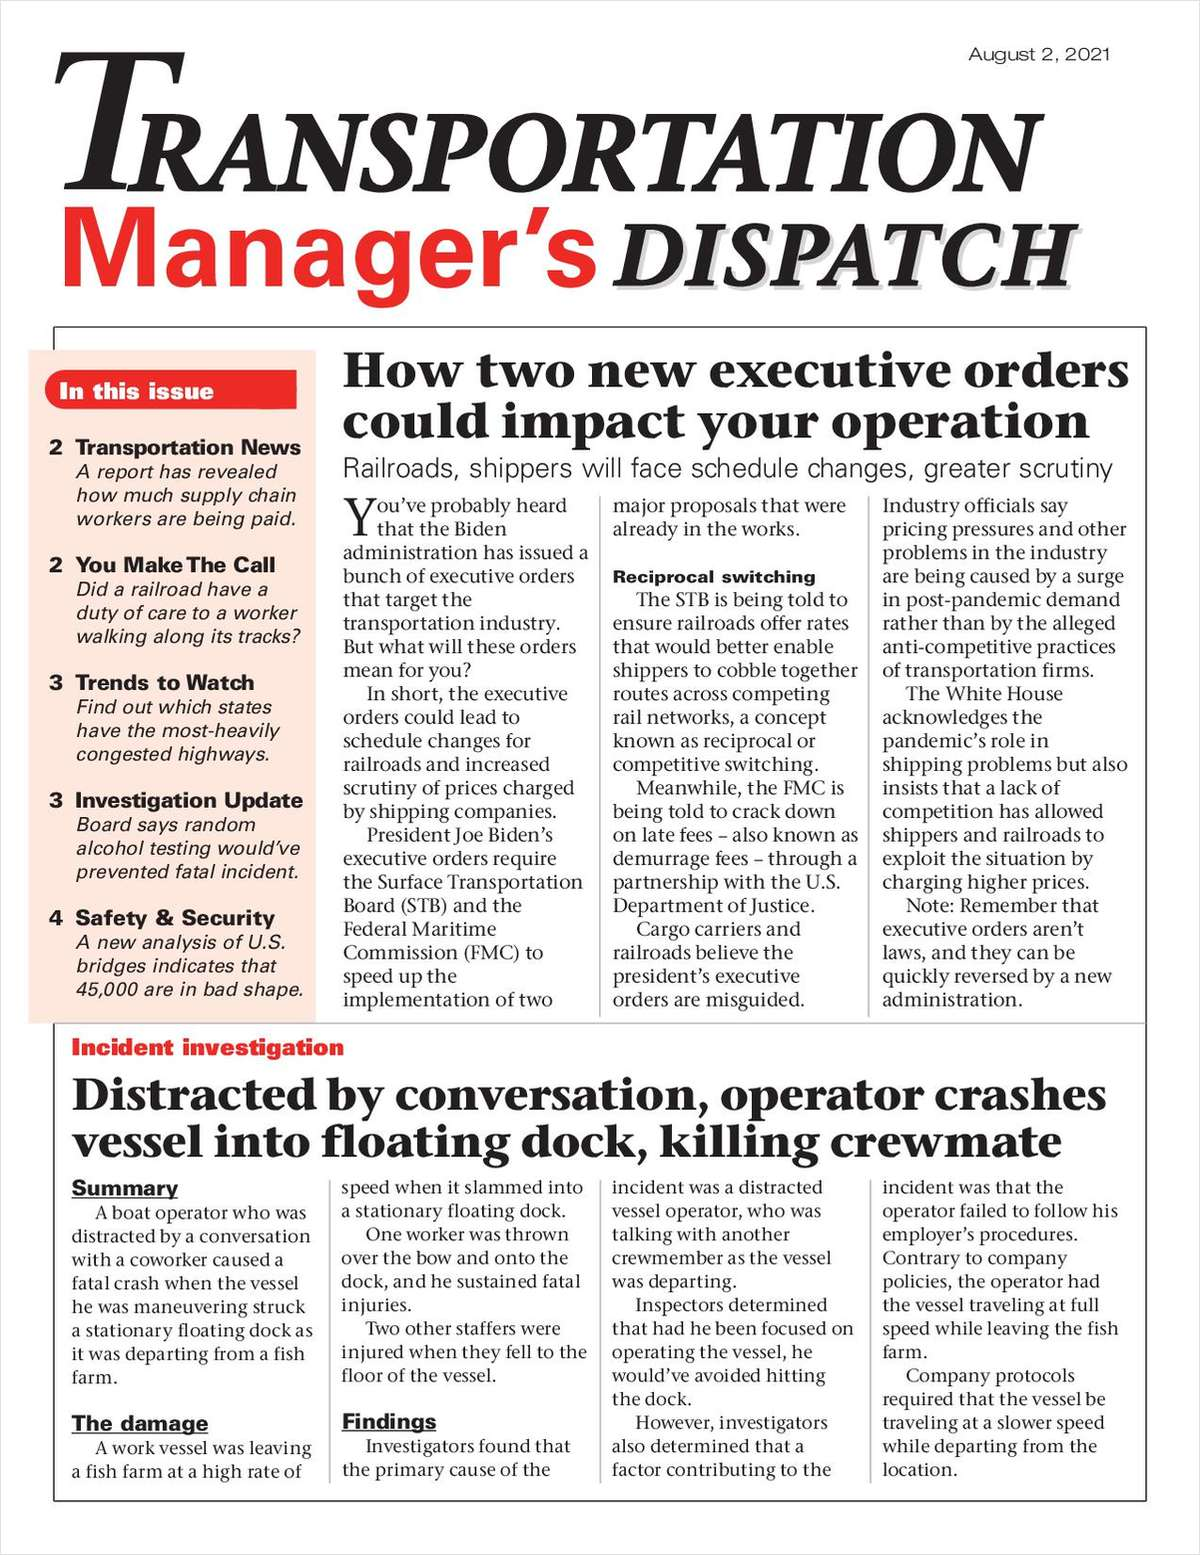 Transportation Manager's Dispatch Newsletter: August 2 Issue